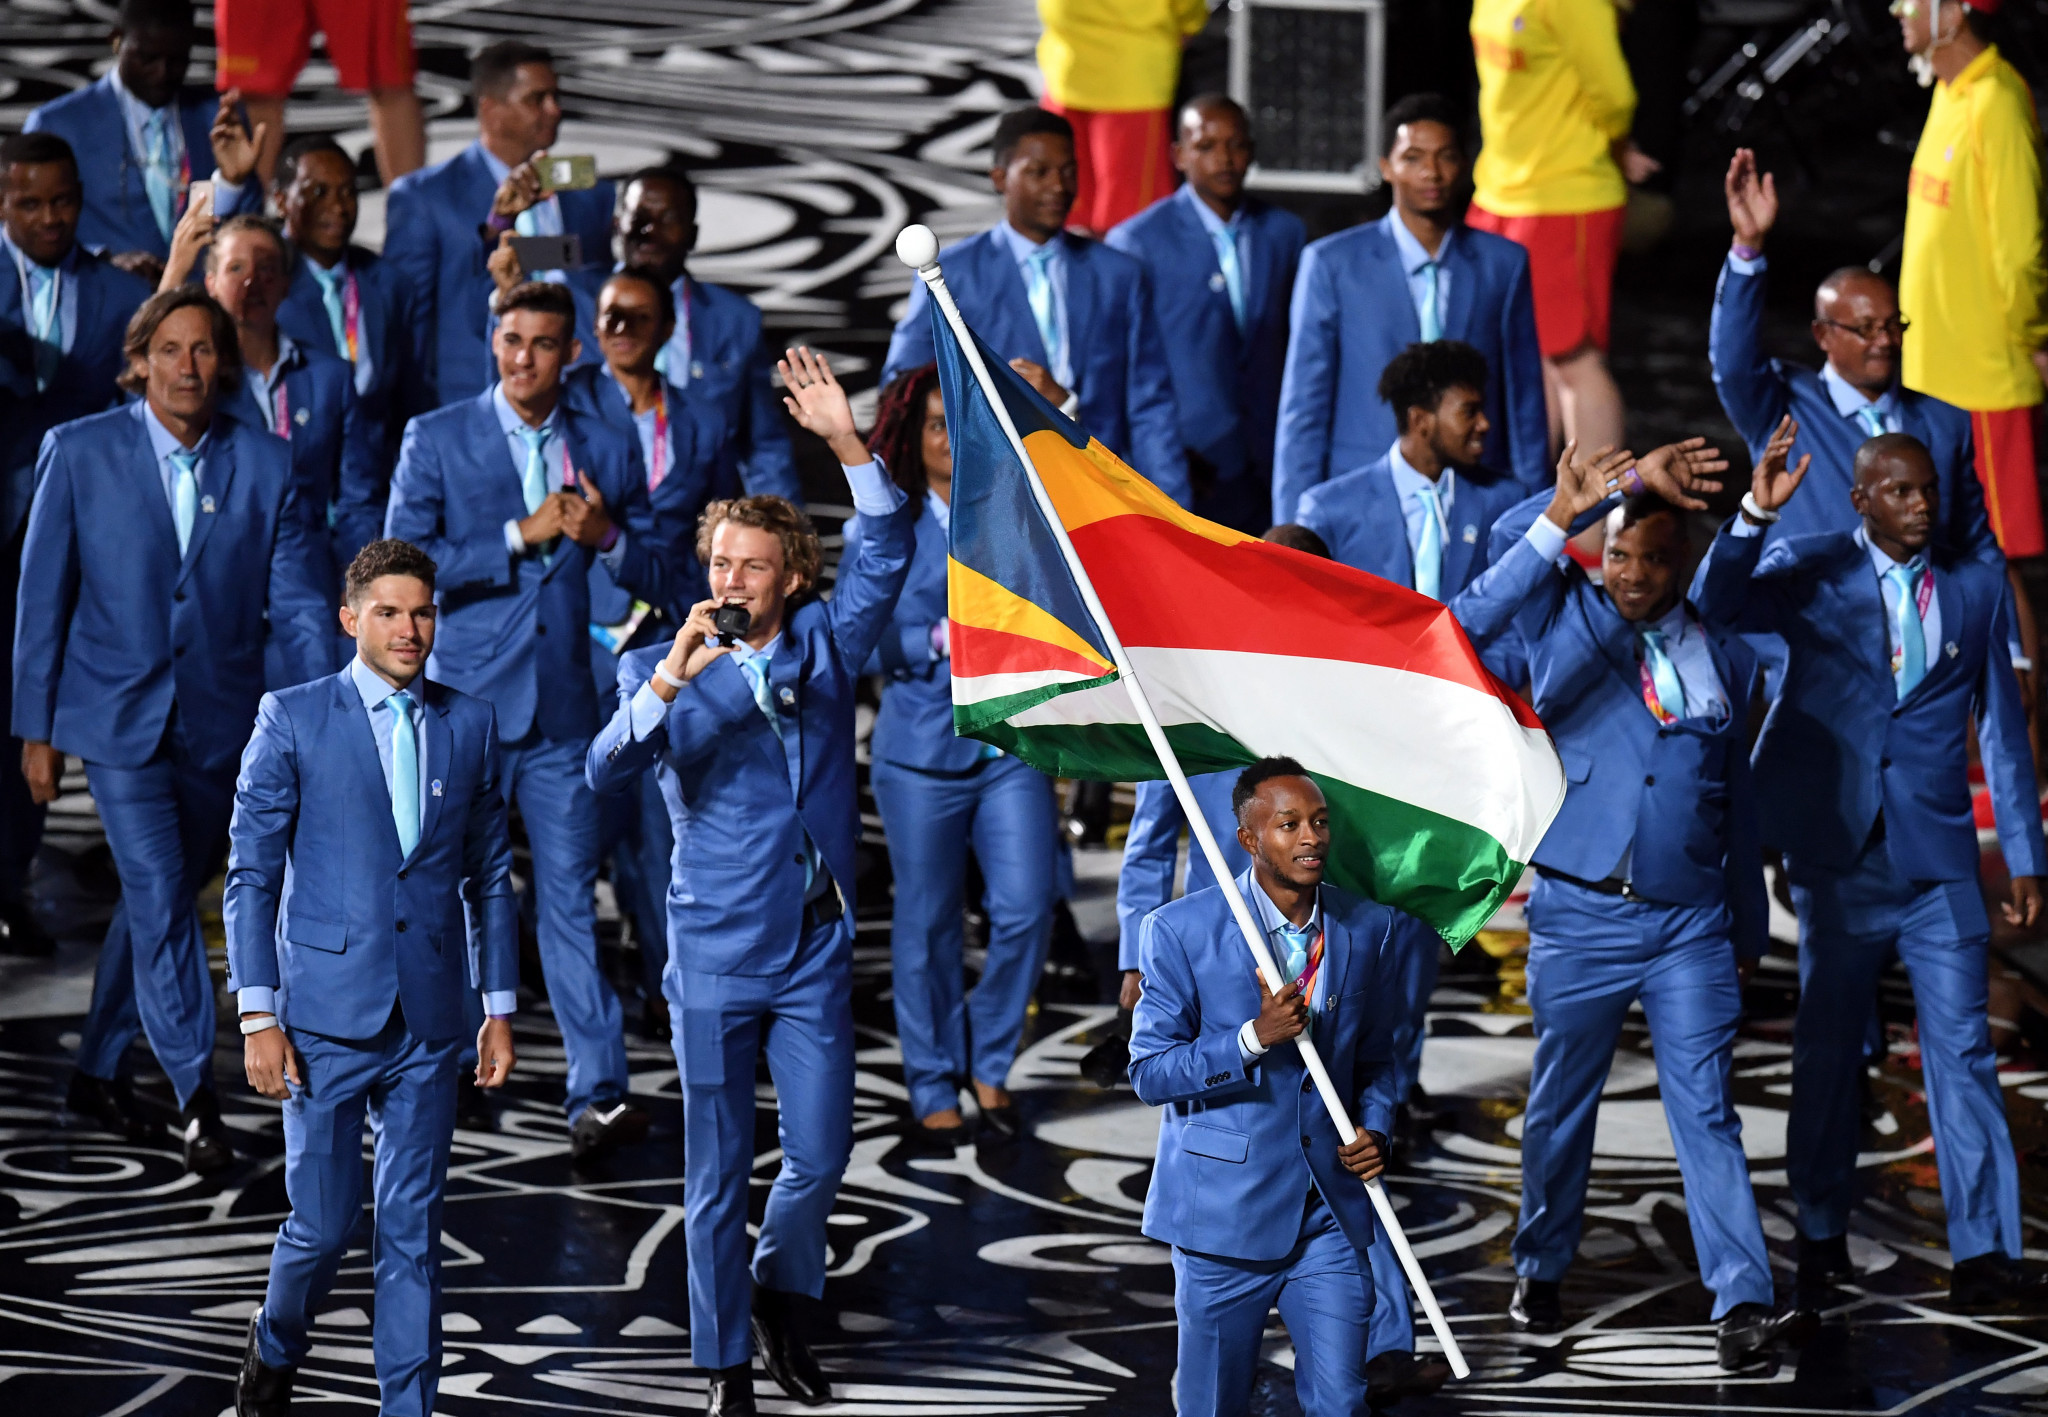 Seychelles at the Opening Ceremony of the Gold Coast 2018 Commonwealth Games ©Getty Images